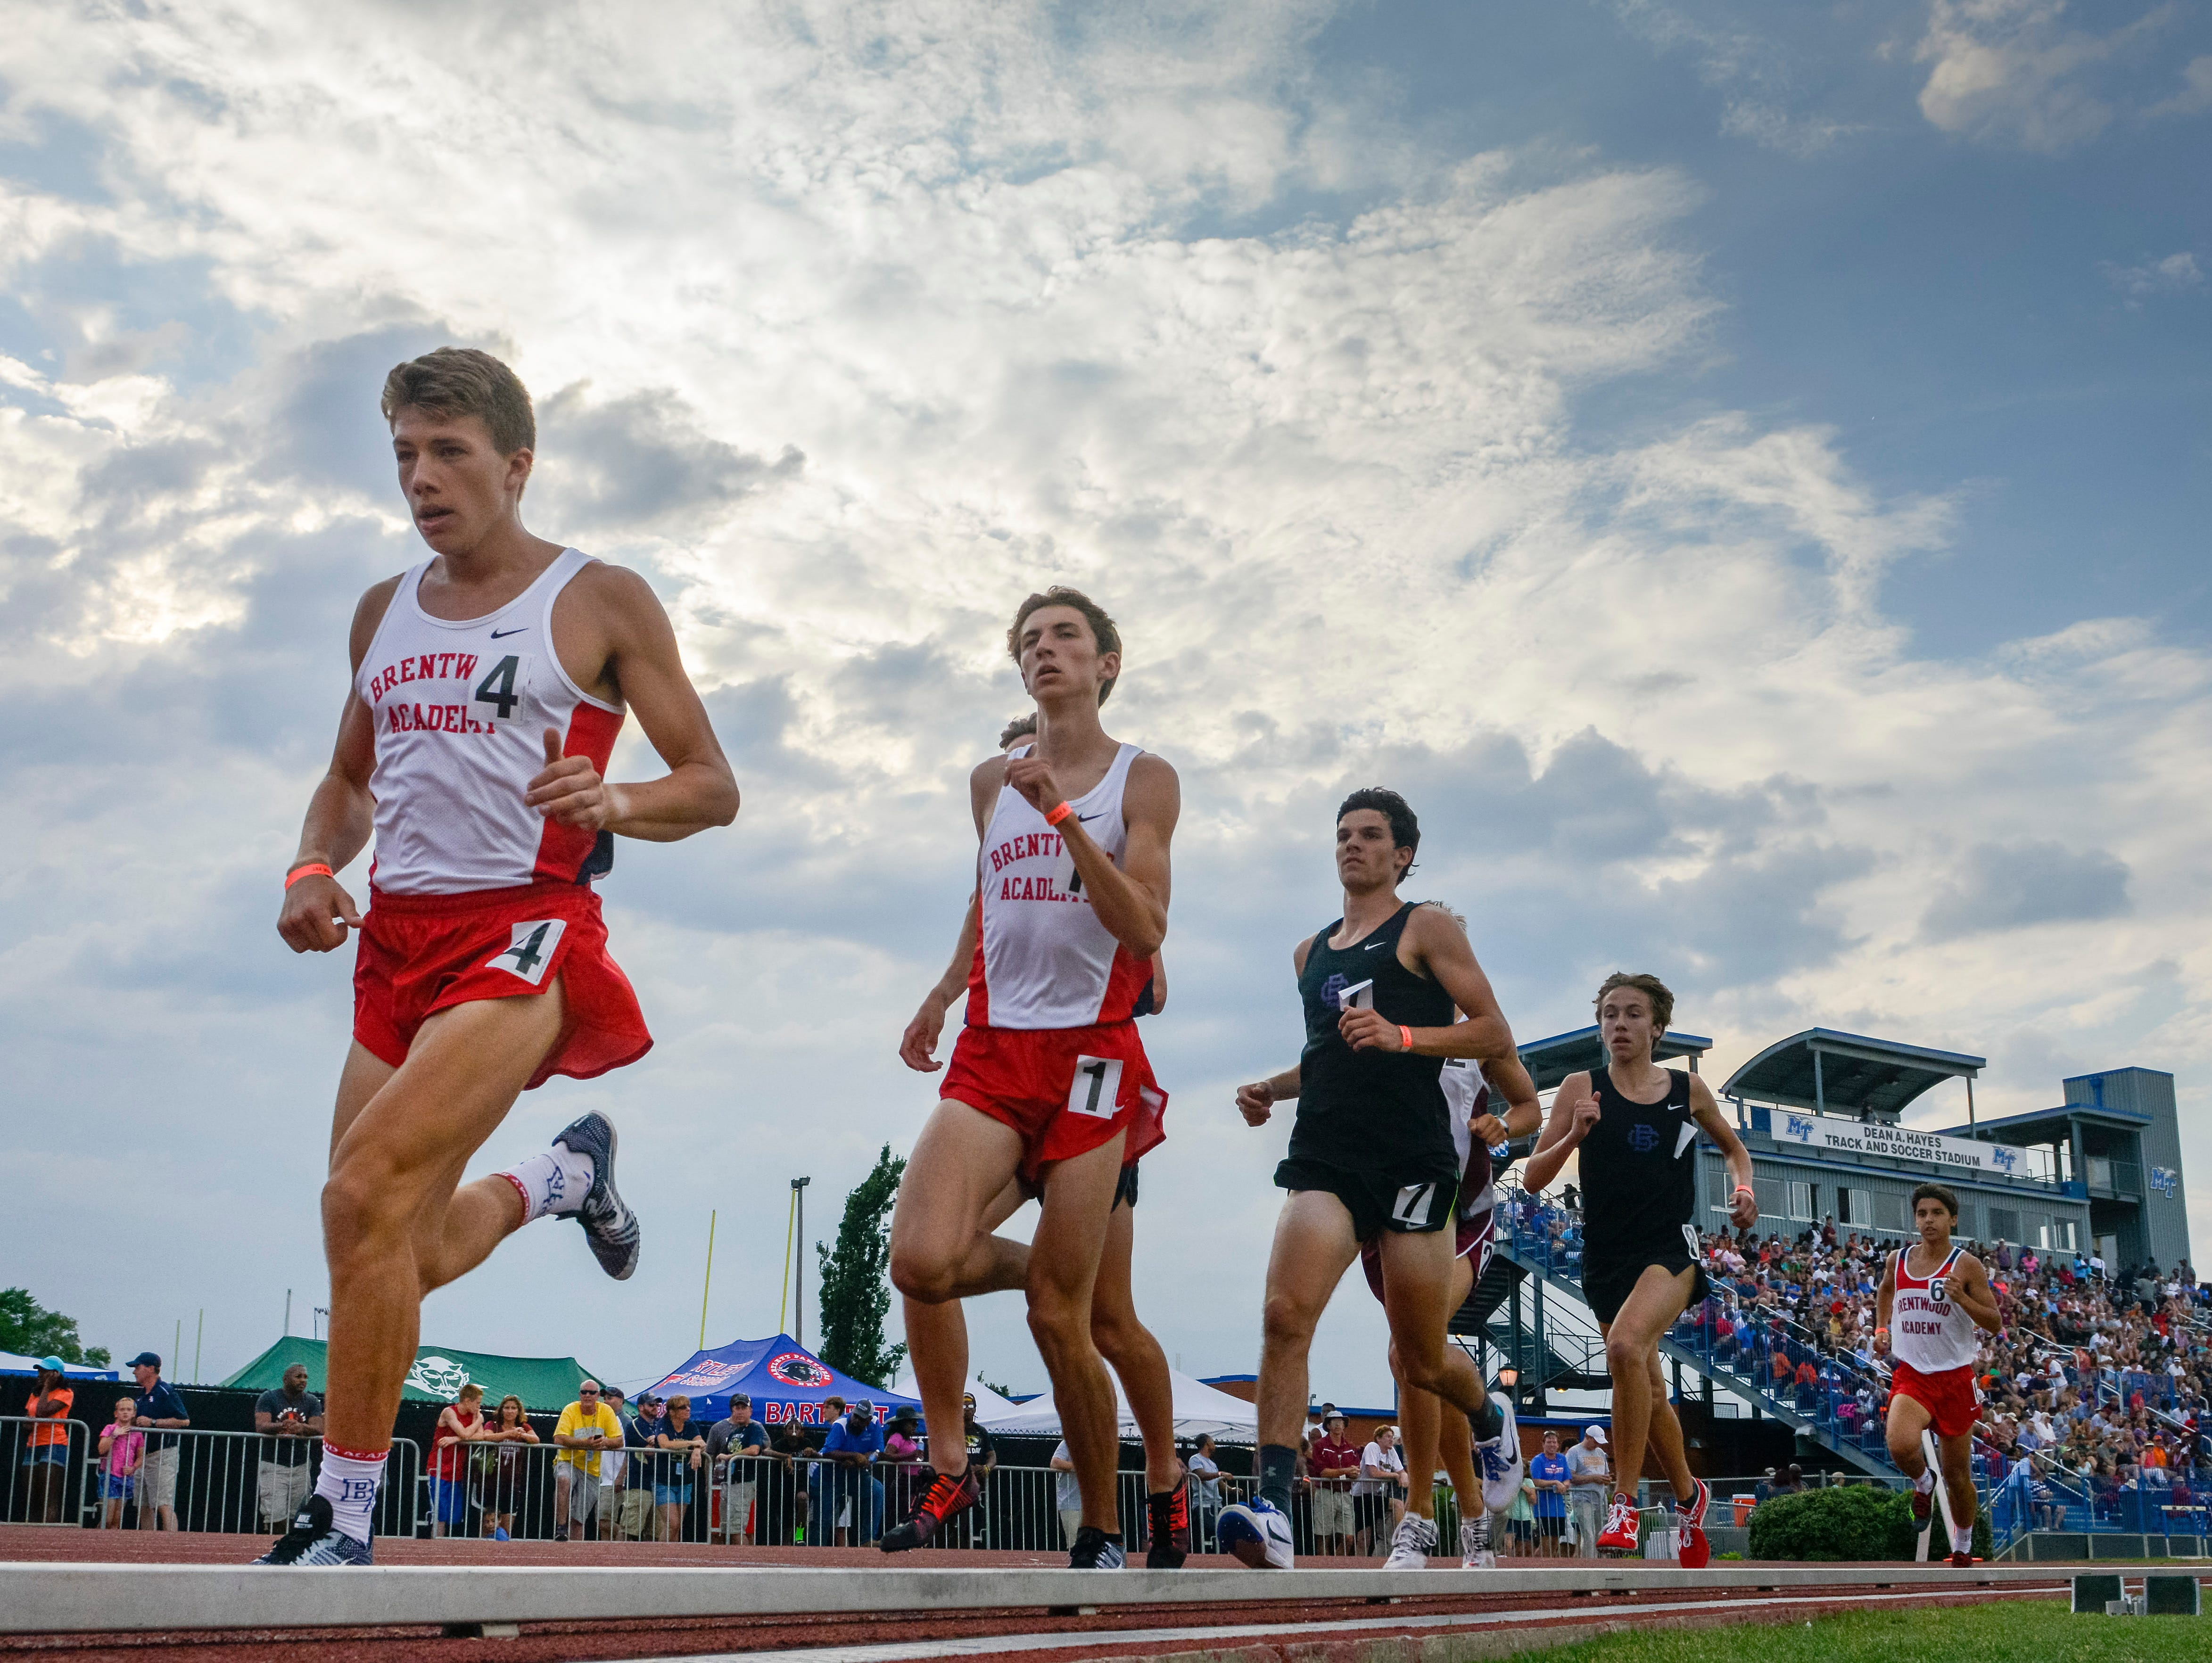 Brentwood Academy's Michael Renner maintains a lead to win first place in the D-II 3200 Meter Run during the Spring Fling boys state track meet at MTSU's Dean Hayes Track and Field Stadium, Friday, May 27, 2016, in Murfreesboro, Tenn.